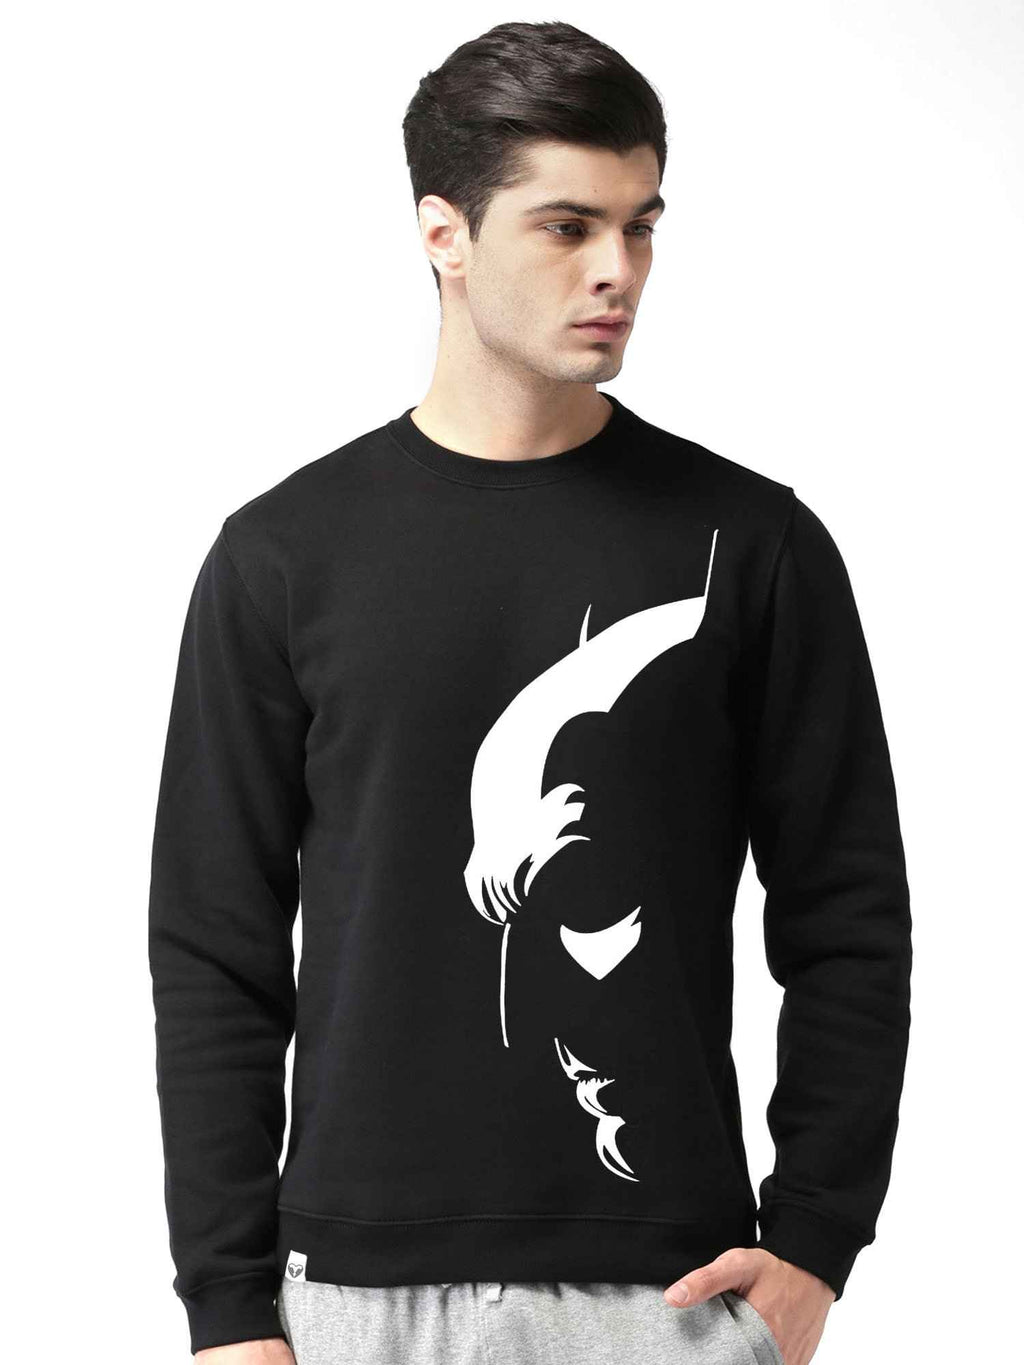 Glow In Dark Batman Graphics Printed Round Neck Sweatshirt - bluehaat